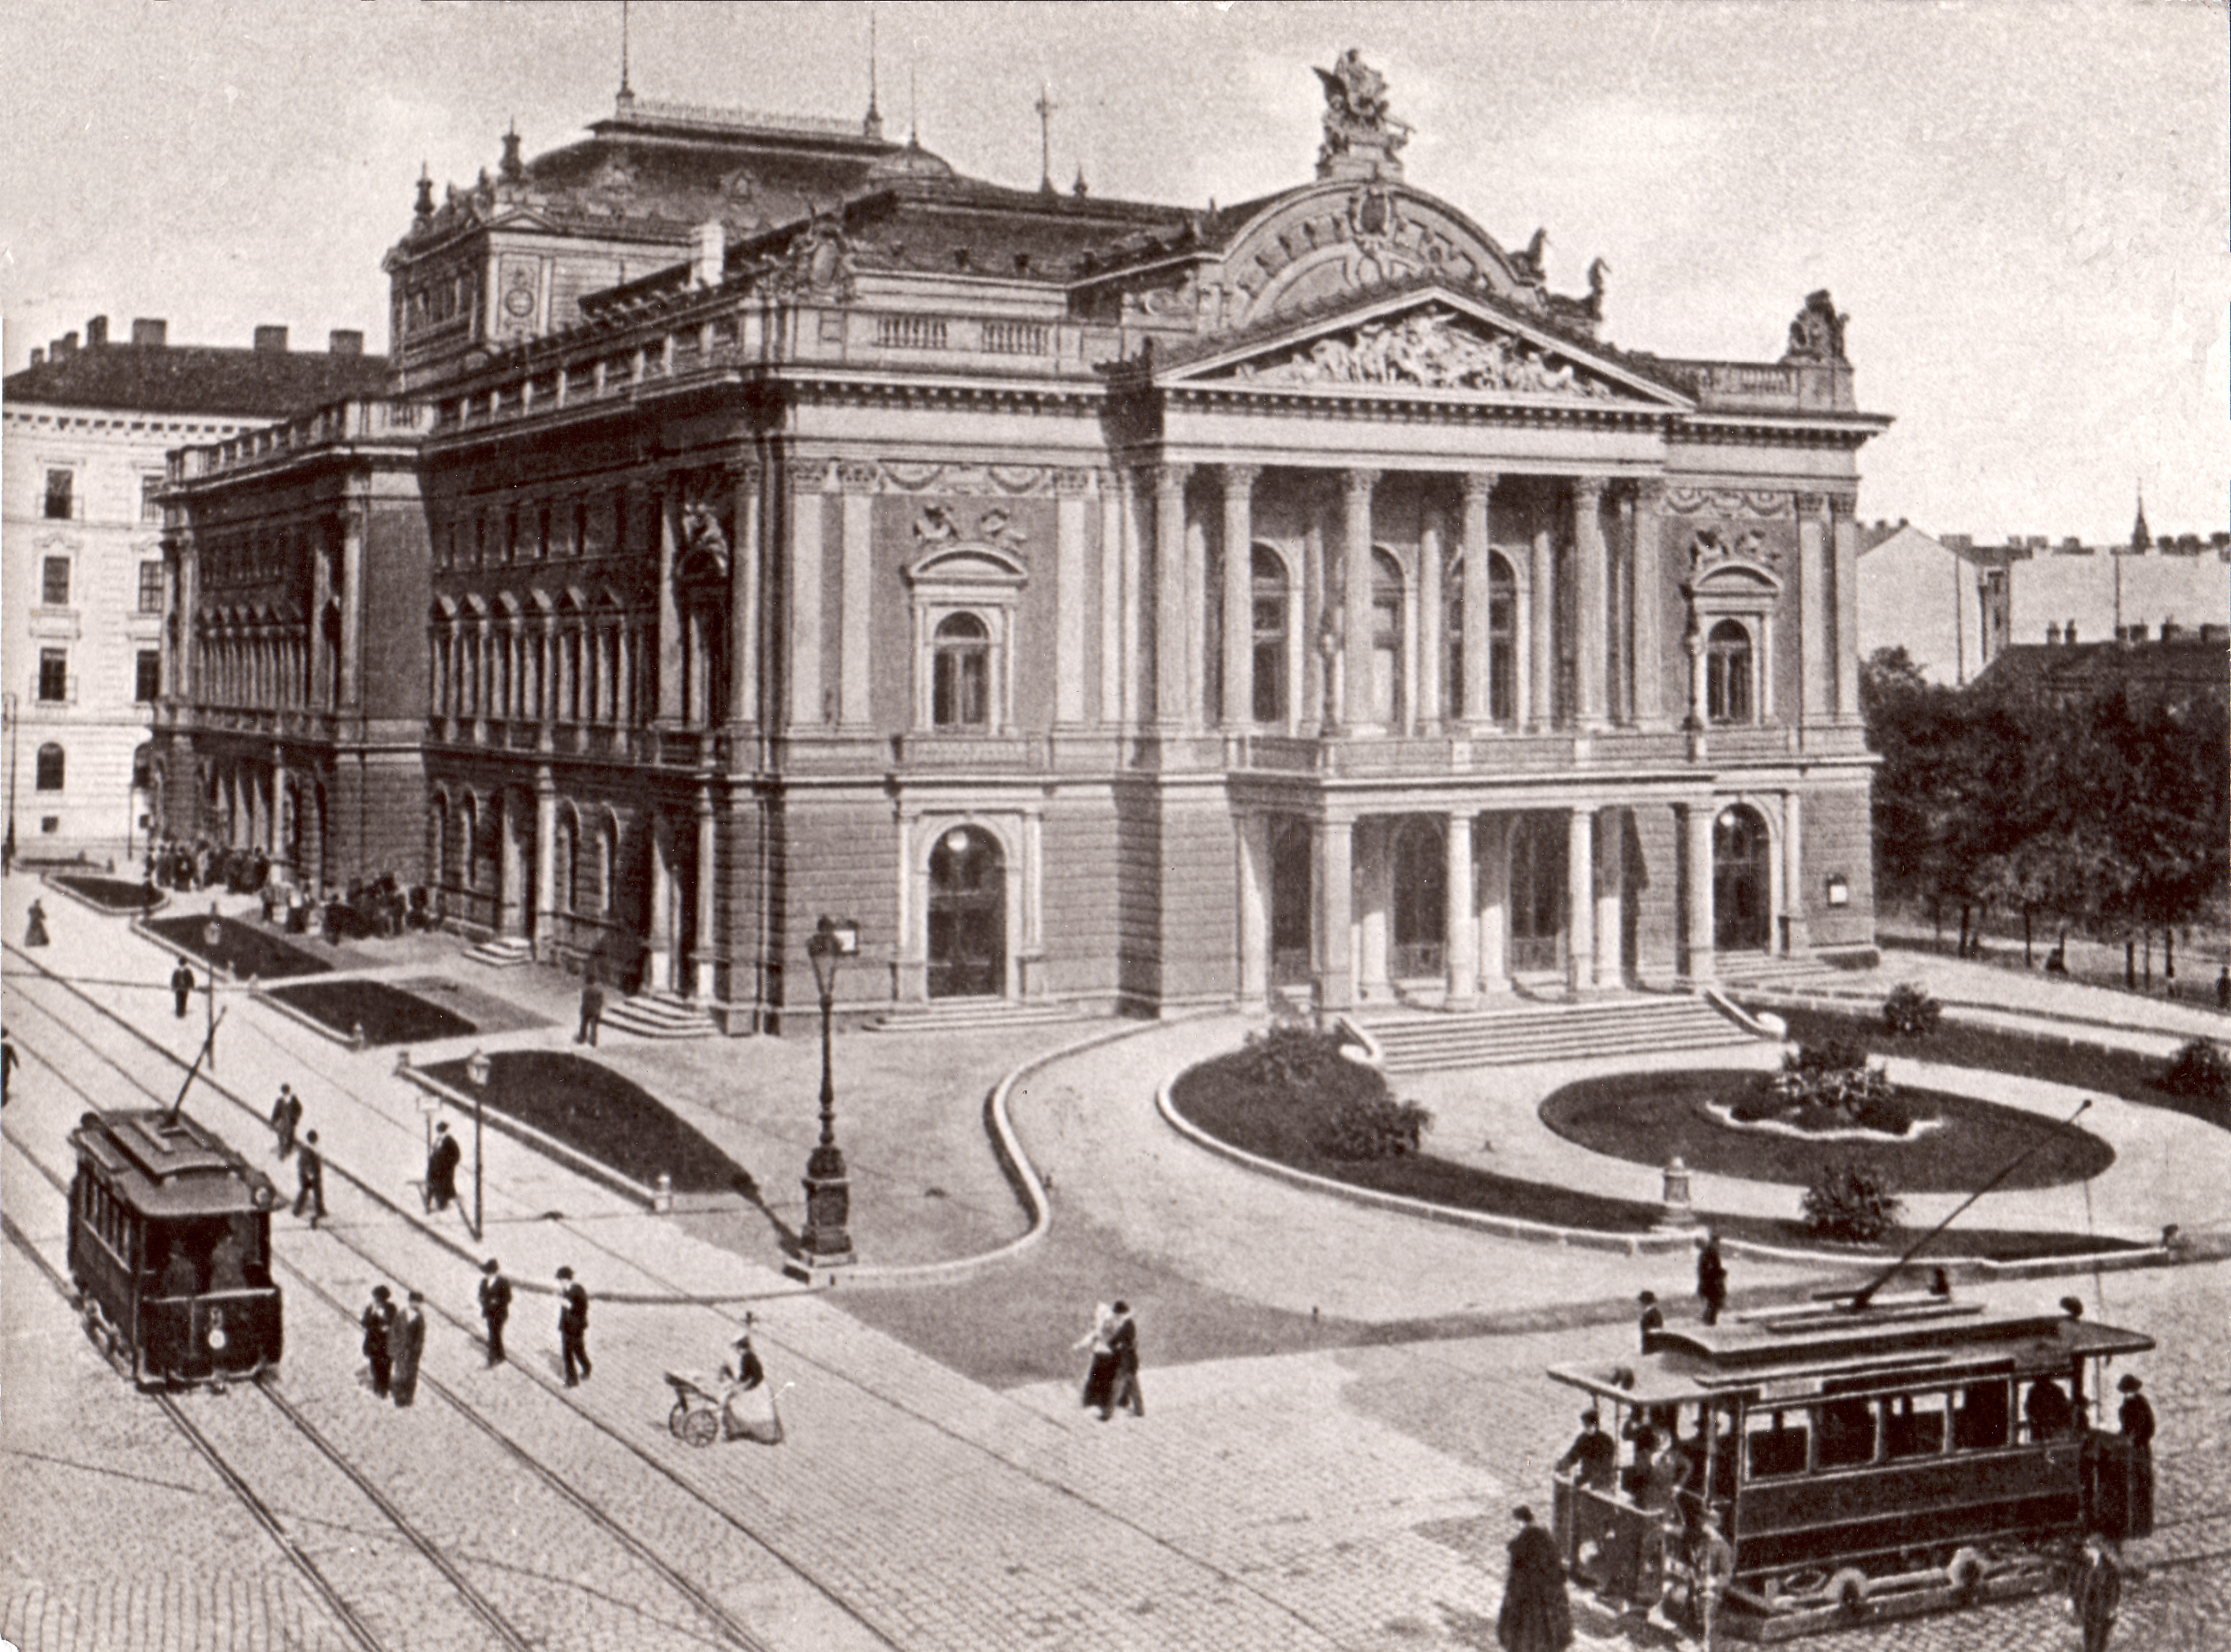 Inaugurated in 1882, Brno's Mahen Theatre hosted a number of premiere of Janáček's operas, including <i>The Cunning Little Vixen</i> and <i>The Makropulos Case</i>